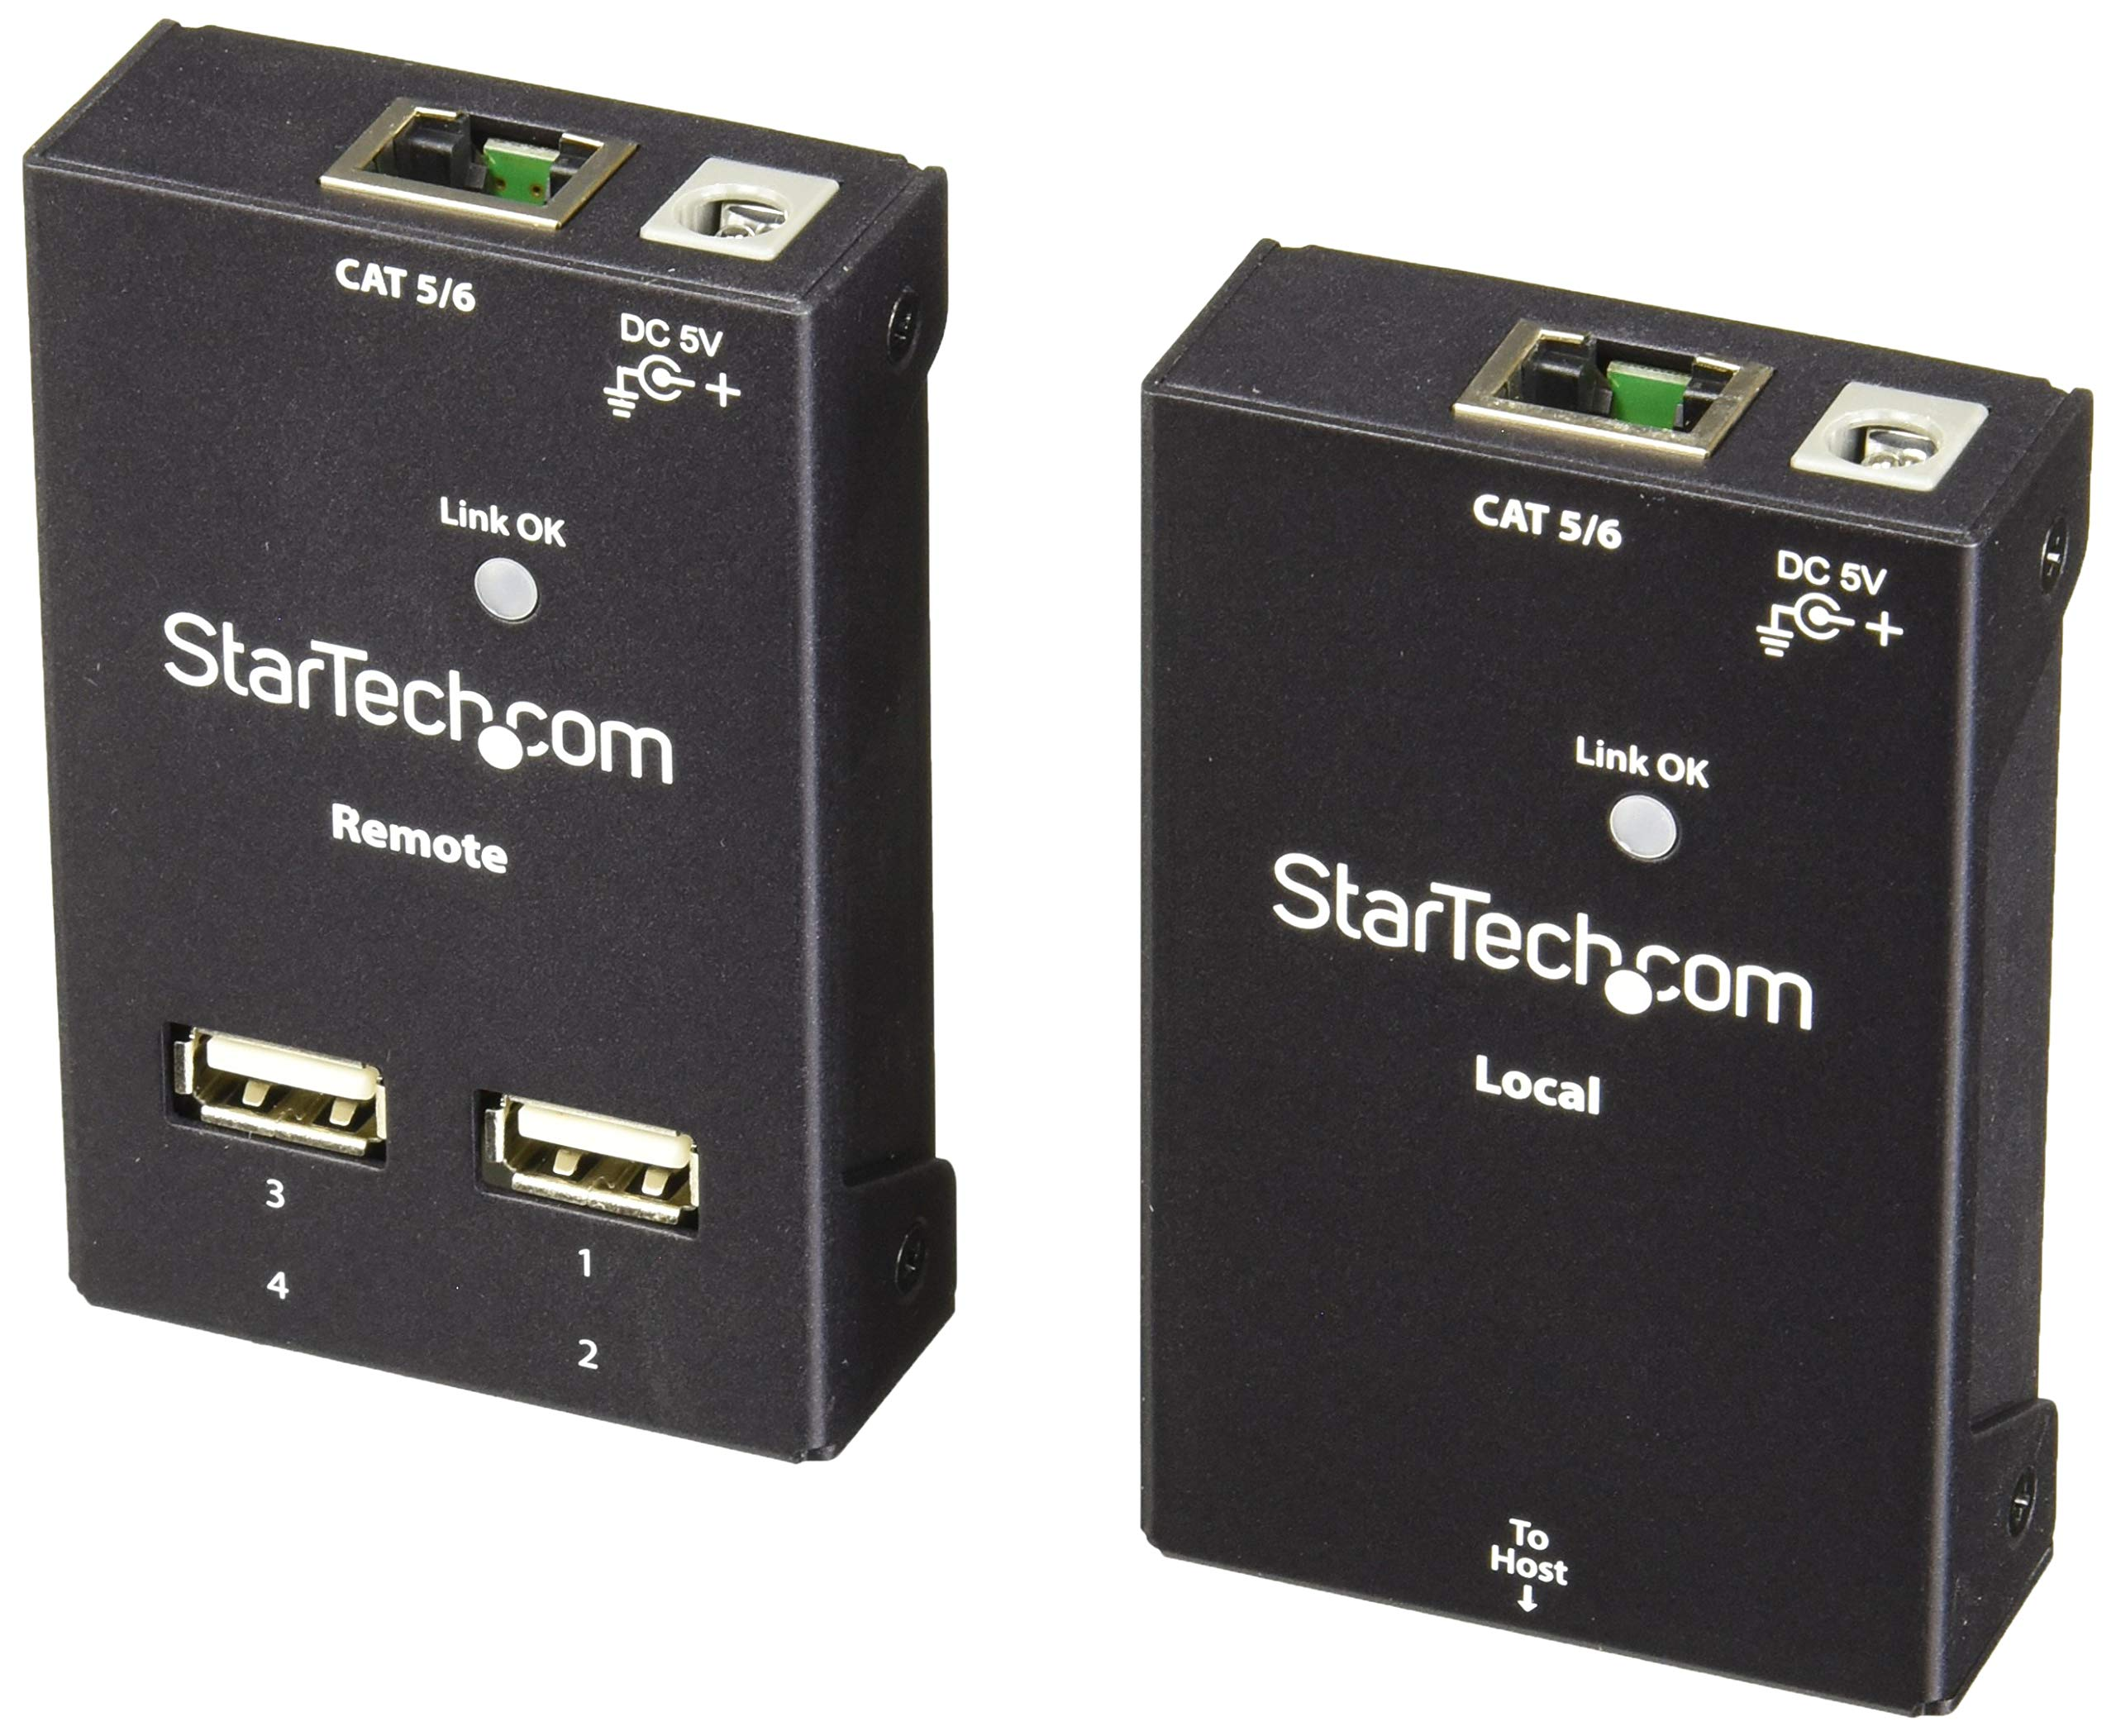 StarTech.com 4 Port USB 2.0-Over-Cat5 / 6 Extender - up to 130ft (40m) Cat5 or 165ft (50m) Cat6 - Cost-effective & Compact USB Extension (USB2004EXTV) by StarTech